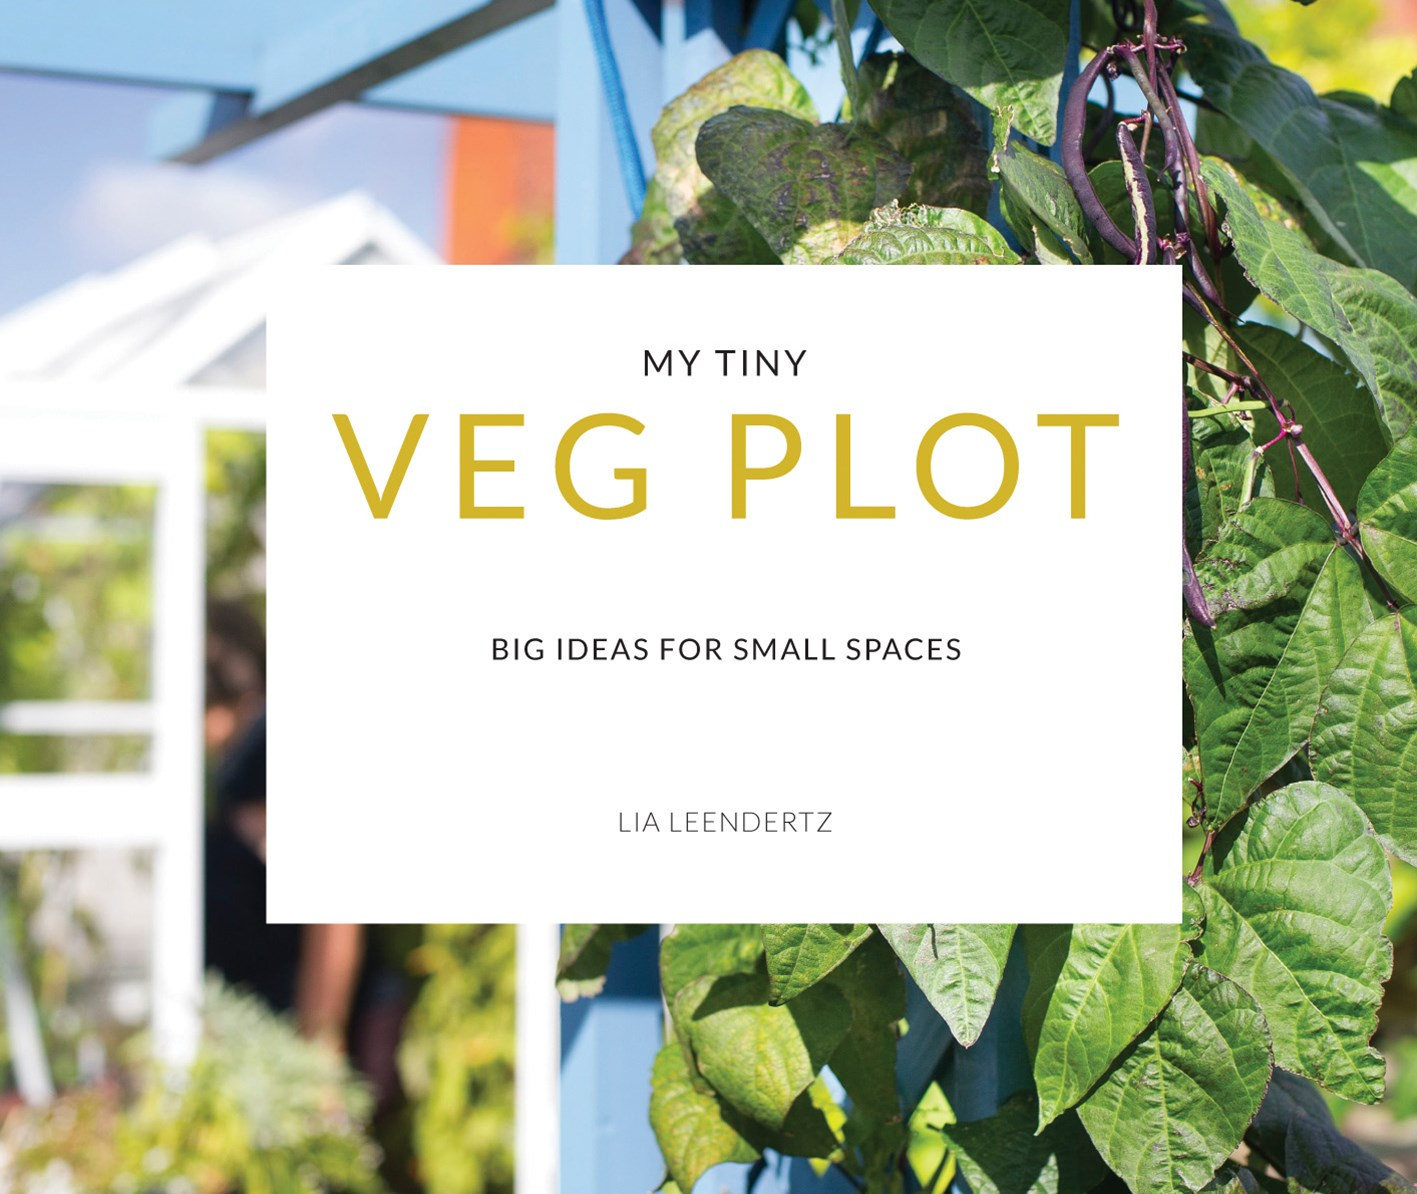 My Tiny Veg Plot: Big Ideas For Small Spaces